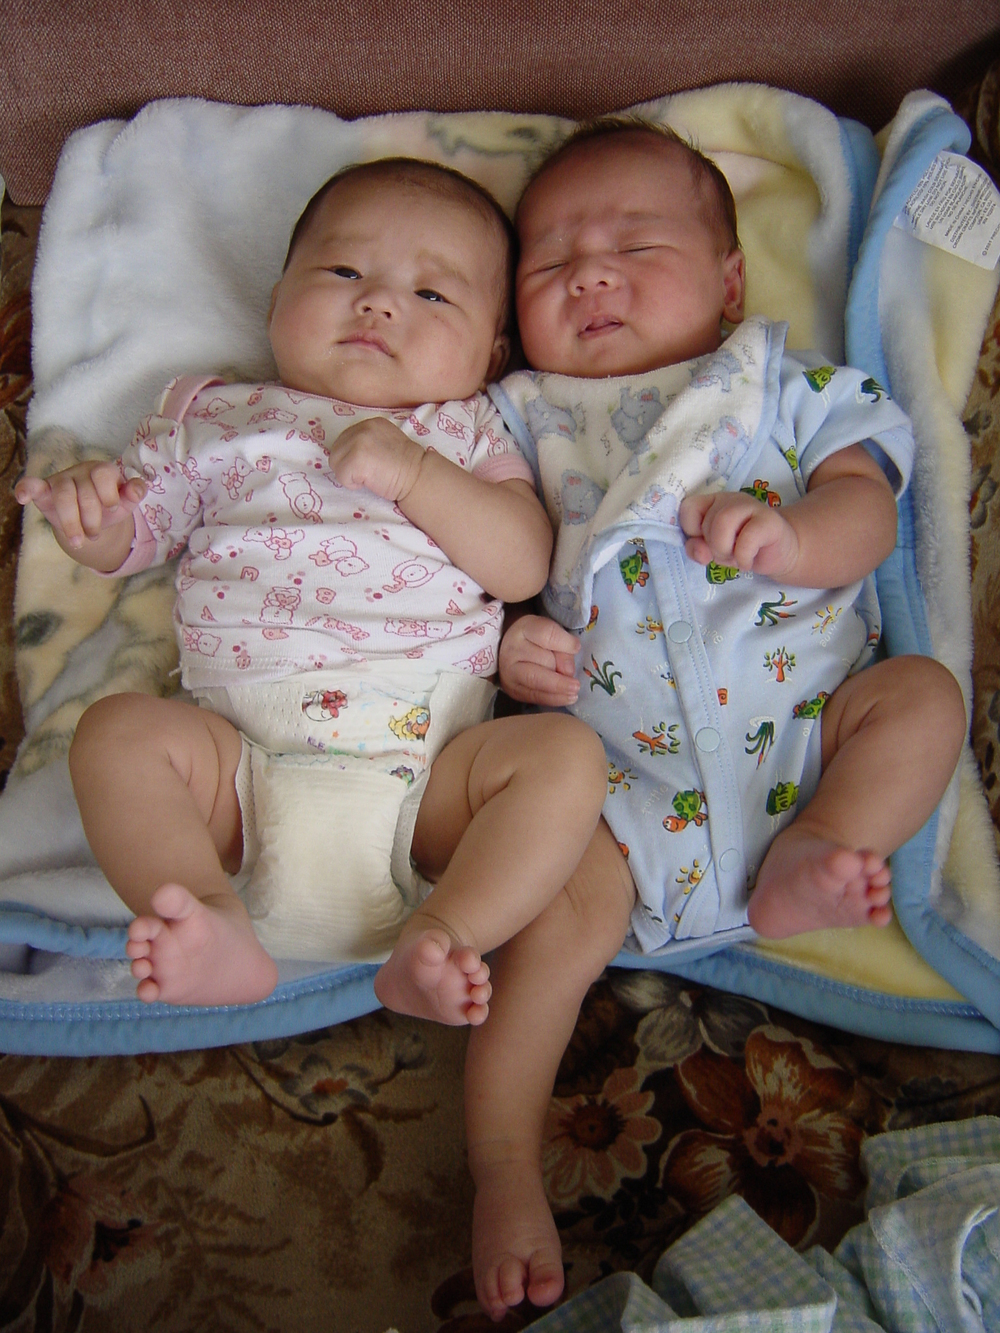 20030525-naya and jaiden03.jpg